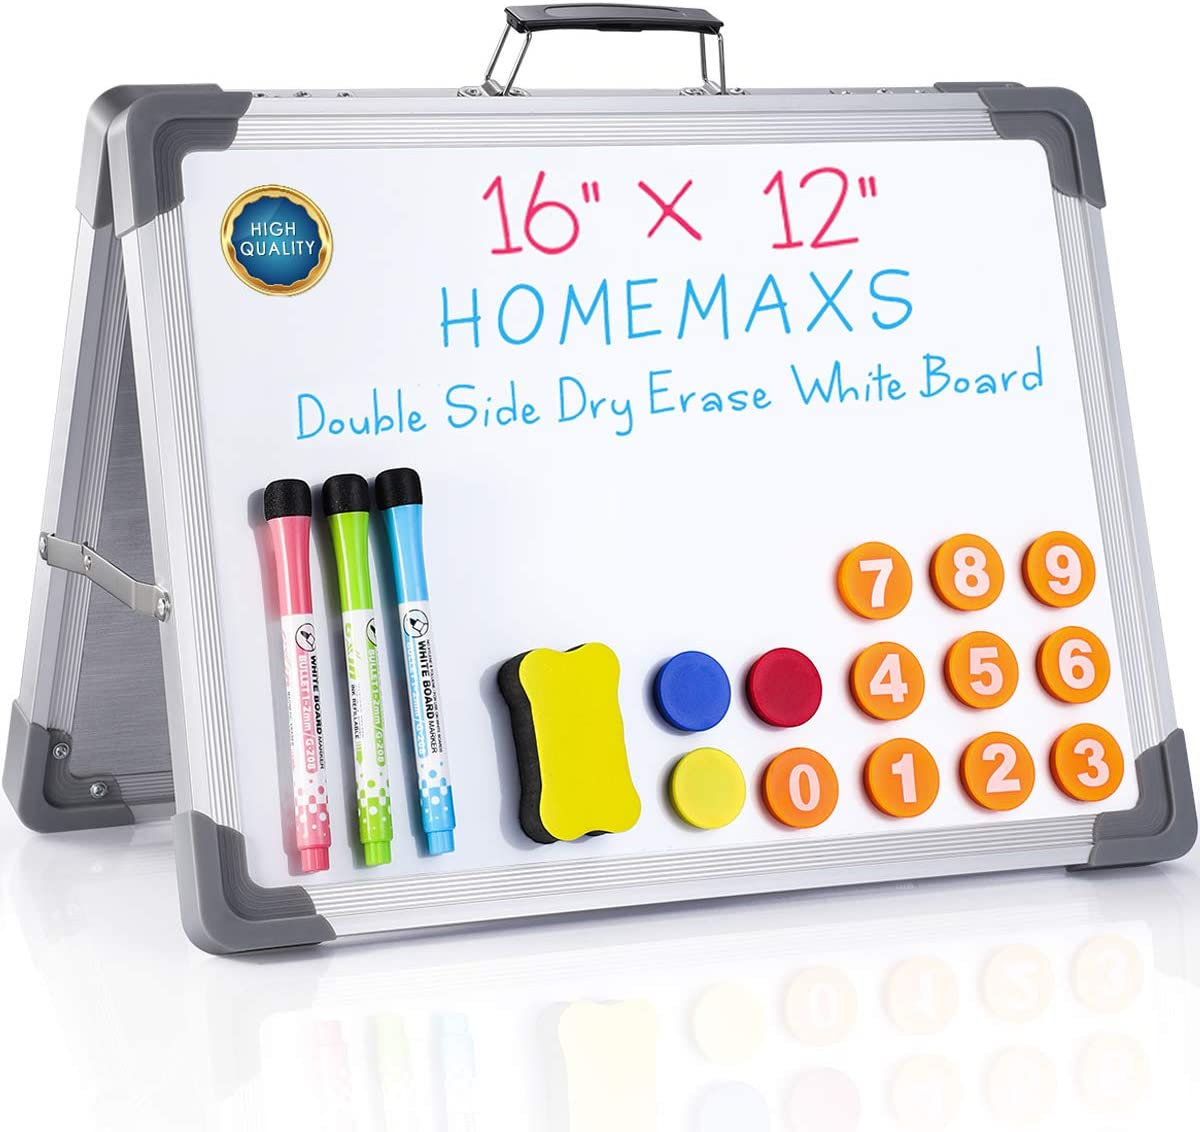 """Homemaxs Small Dry Erase White Board, Magnetic Desktop Portable Dry Erase Board, 12"""" x 16"""" Double Sided Magnetic Whiteboard, for Kids Drawing, Kitchen Grocery List, Cubicle Memo Board"""